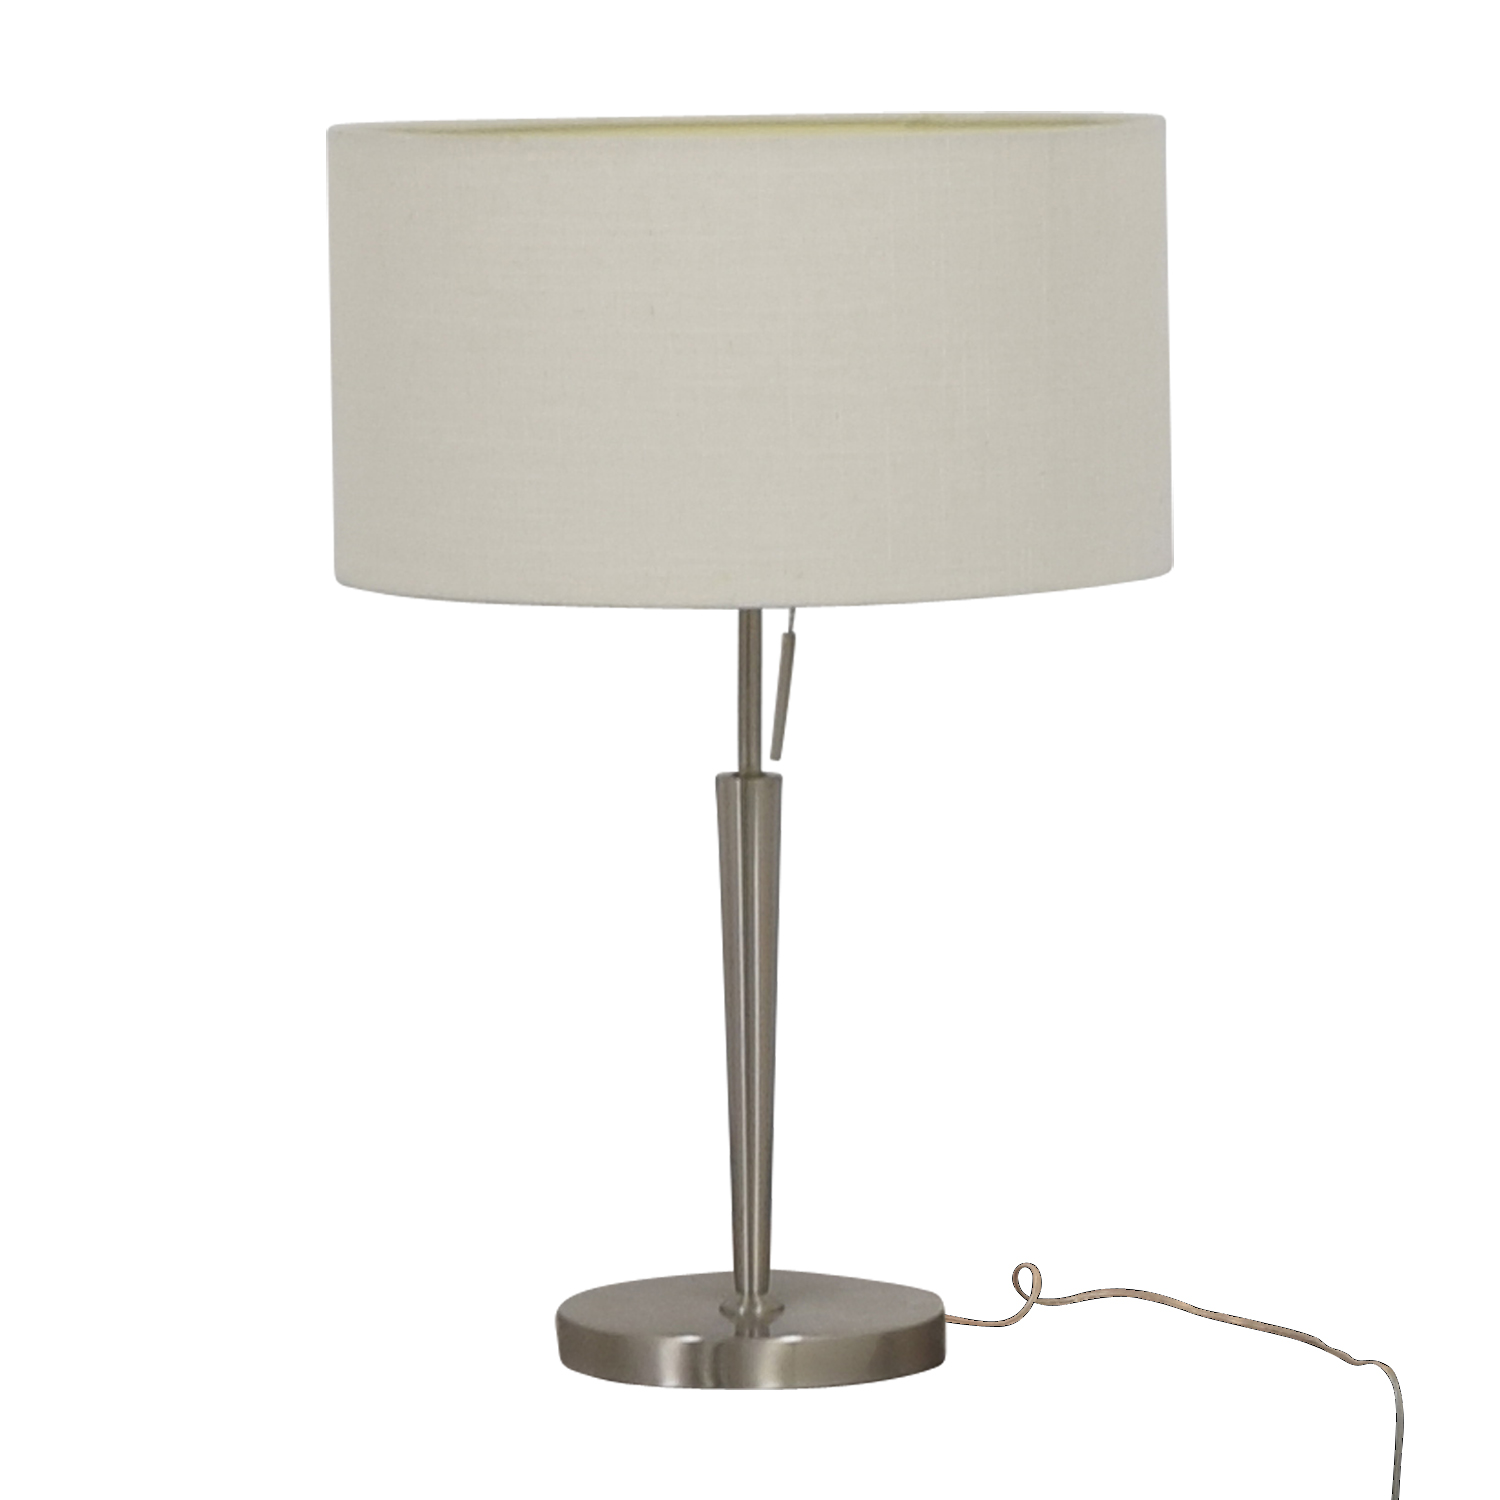 Arcadia Collection Arcadia Collection Chrome Table Lamp dimensions